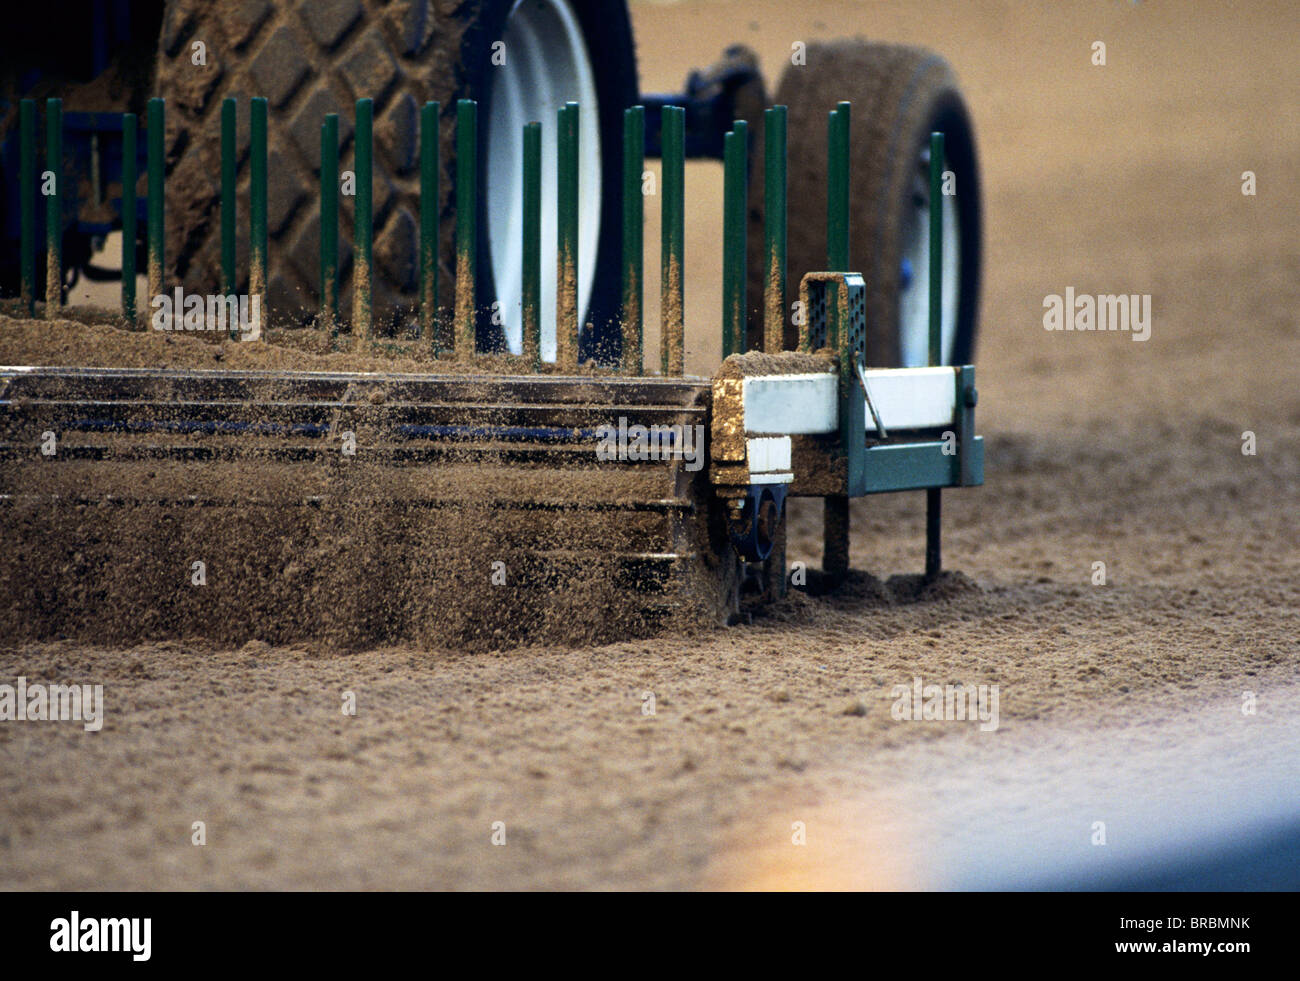 Tractor pulls a grooming machine across a horse racing track Stock Photo